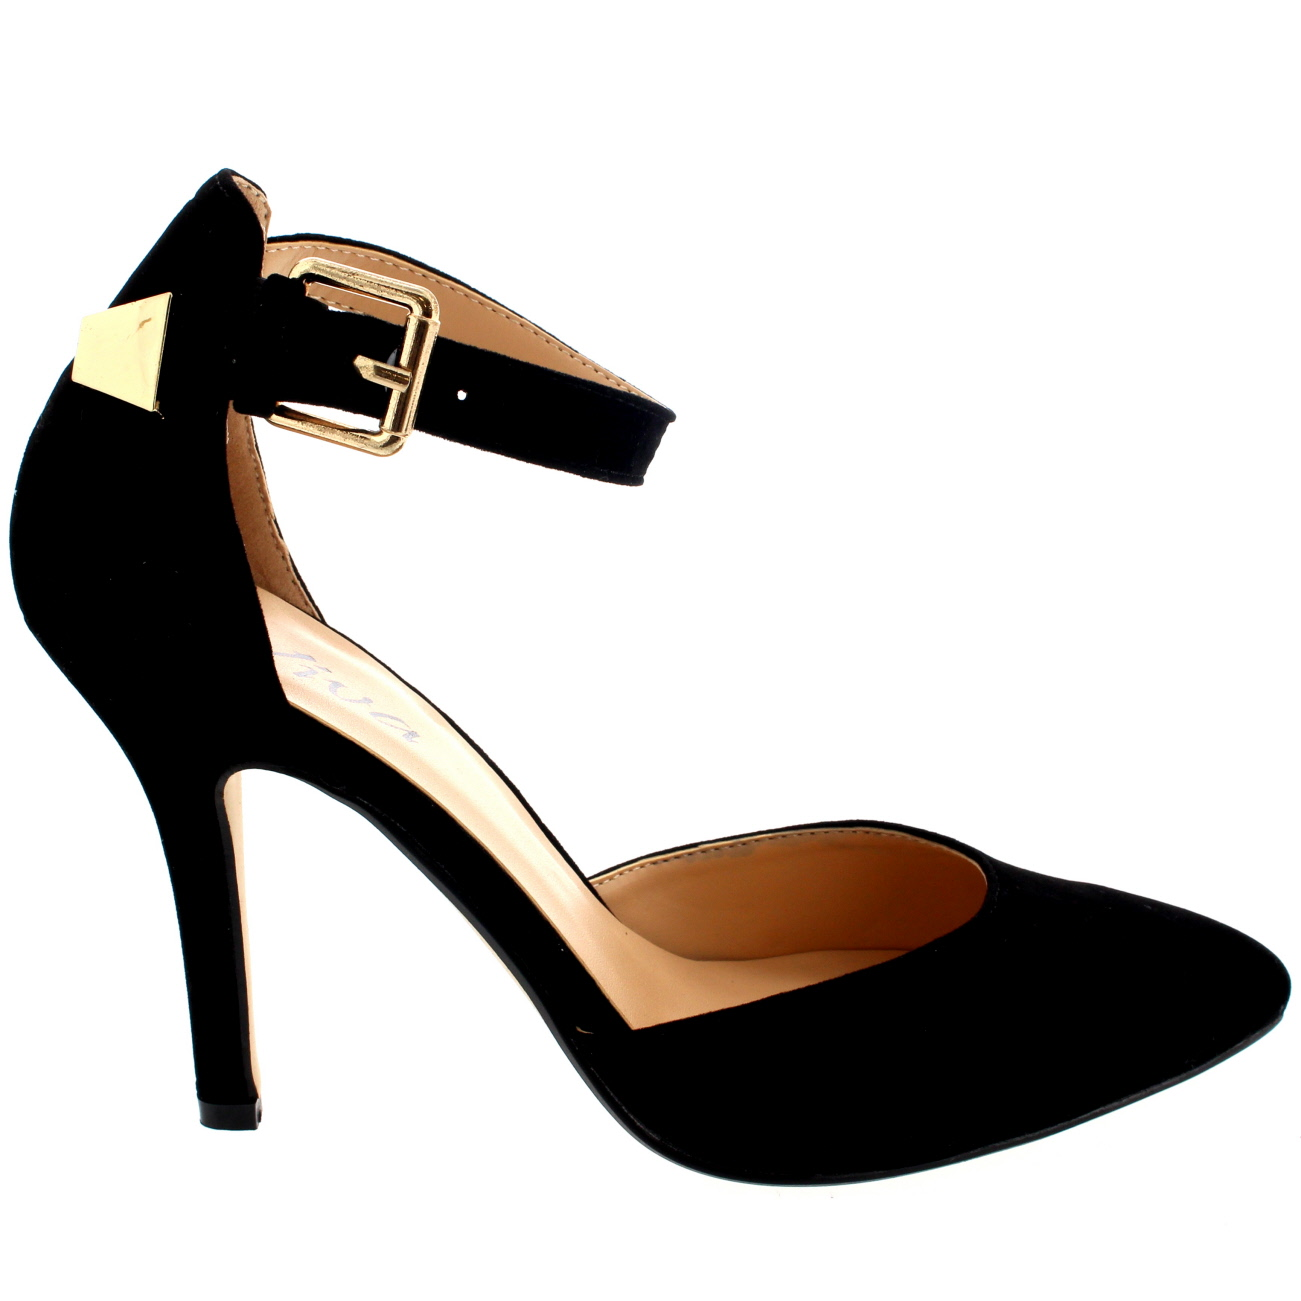 5cfe2fdcba1a Details about Womens Ankle Strap Low Mid Heel Office Work Court Shoes  Pointed Toe Suede UK 3-9